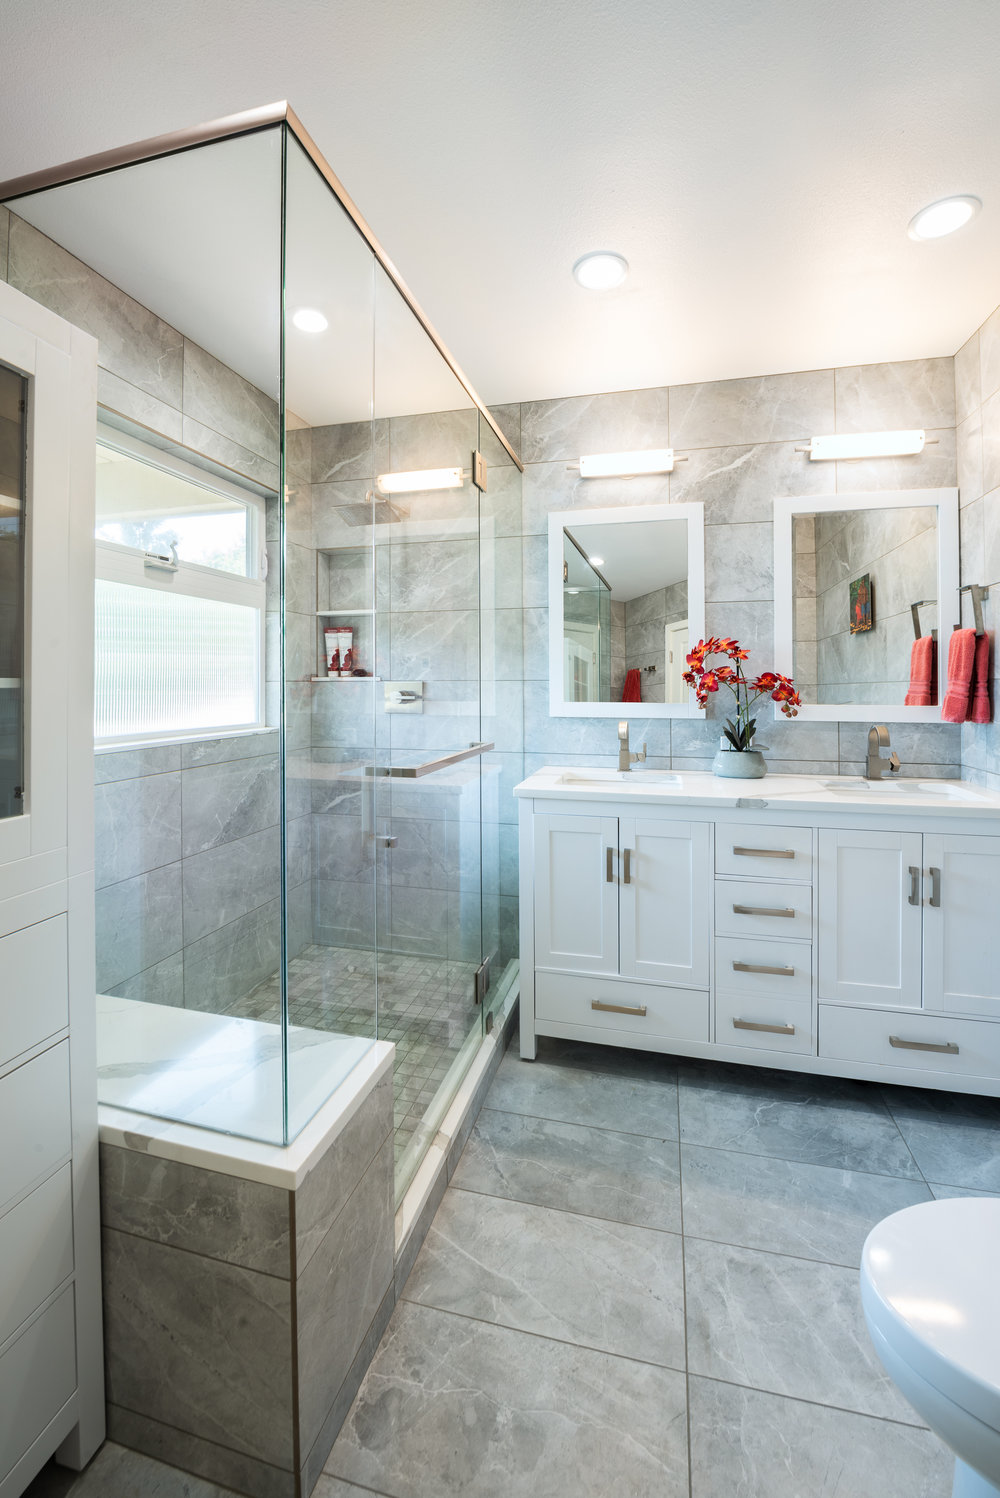 AtelierDrome_AckermanBathroom-13692.jpg